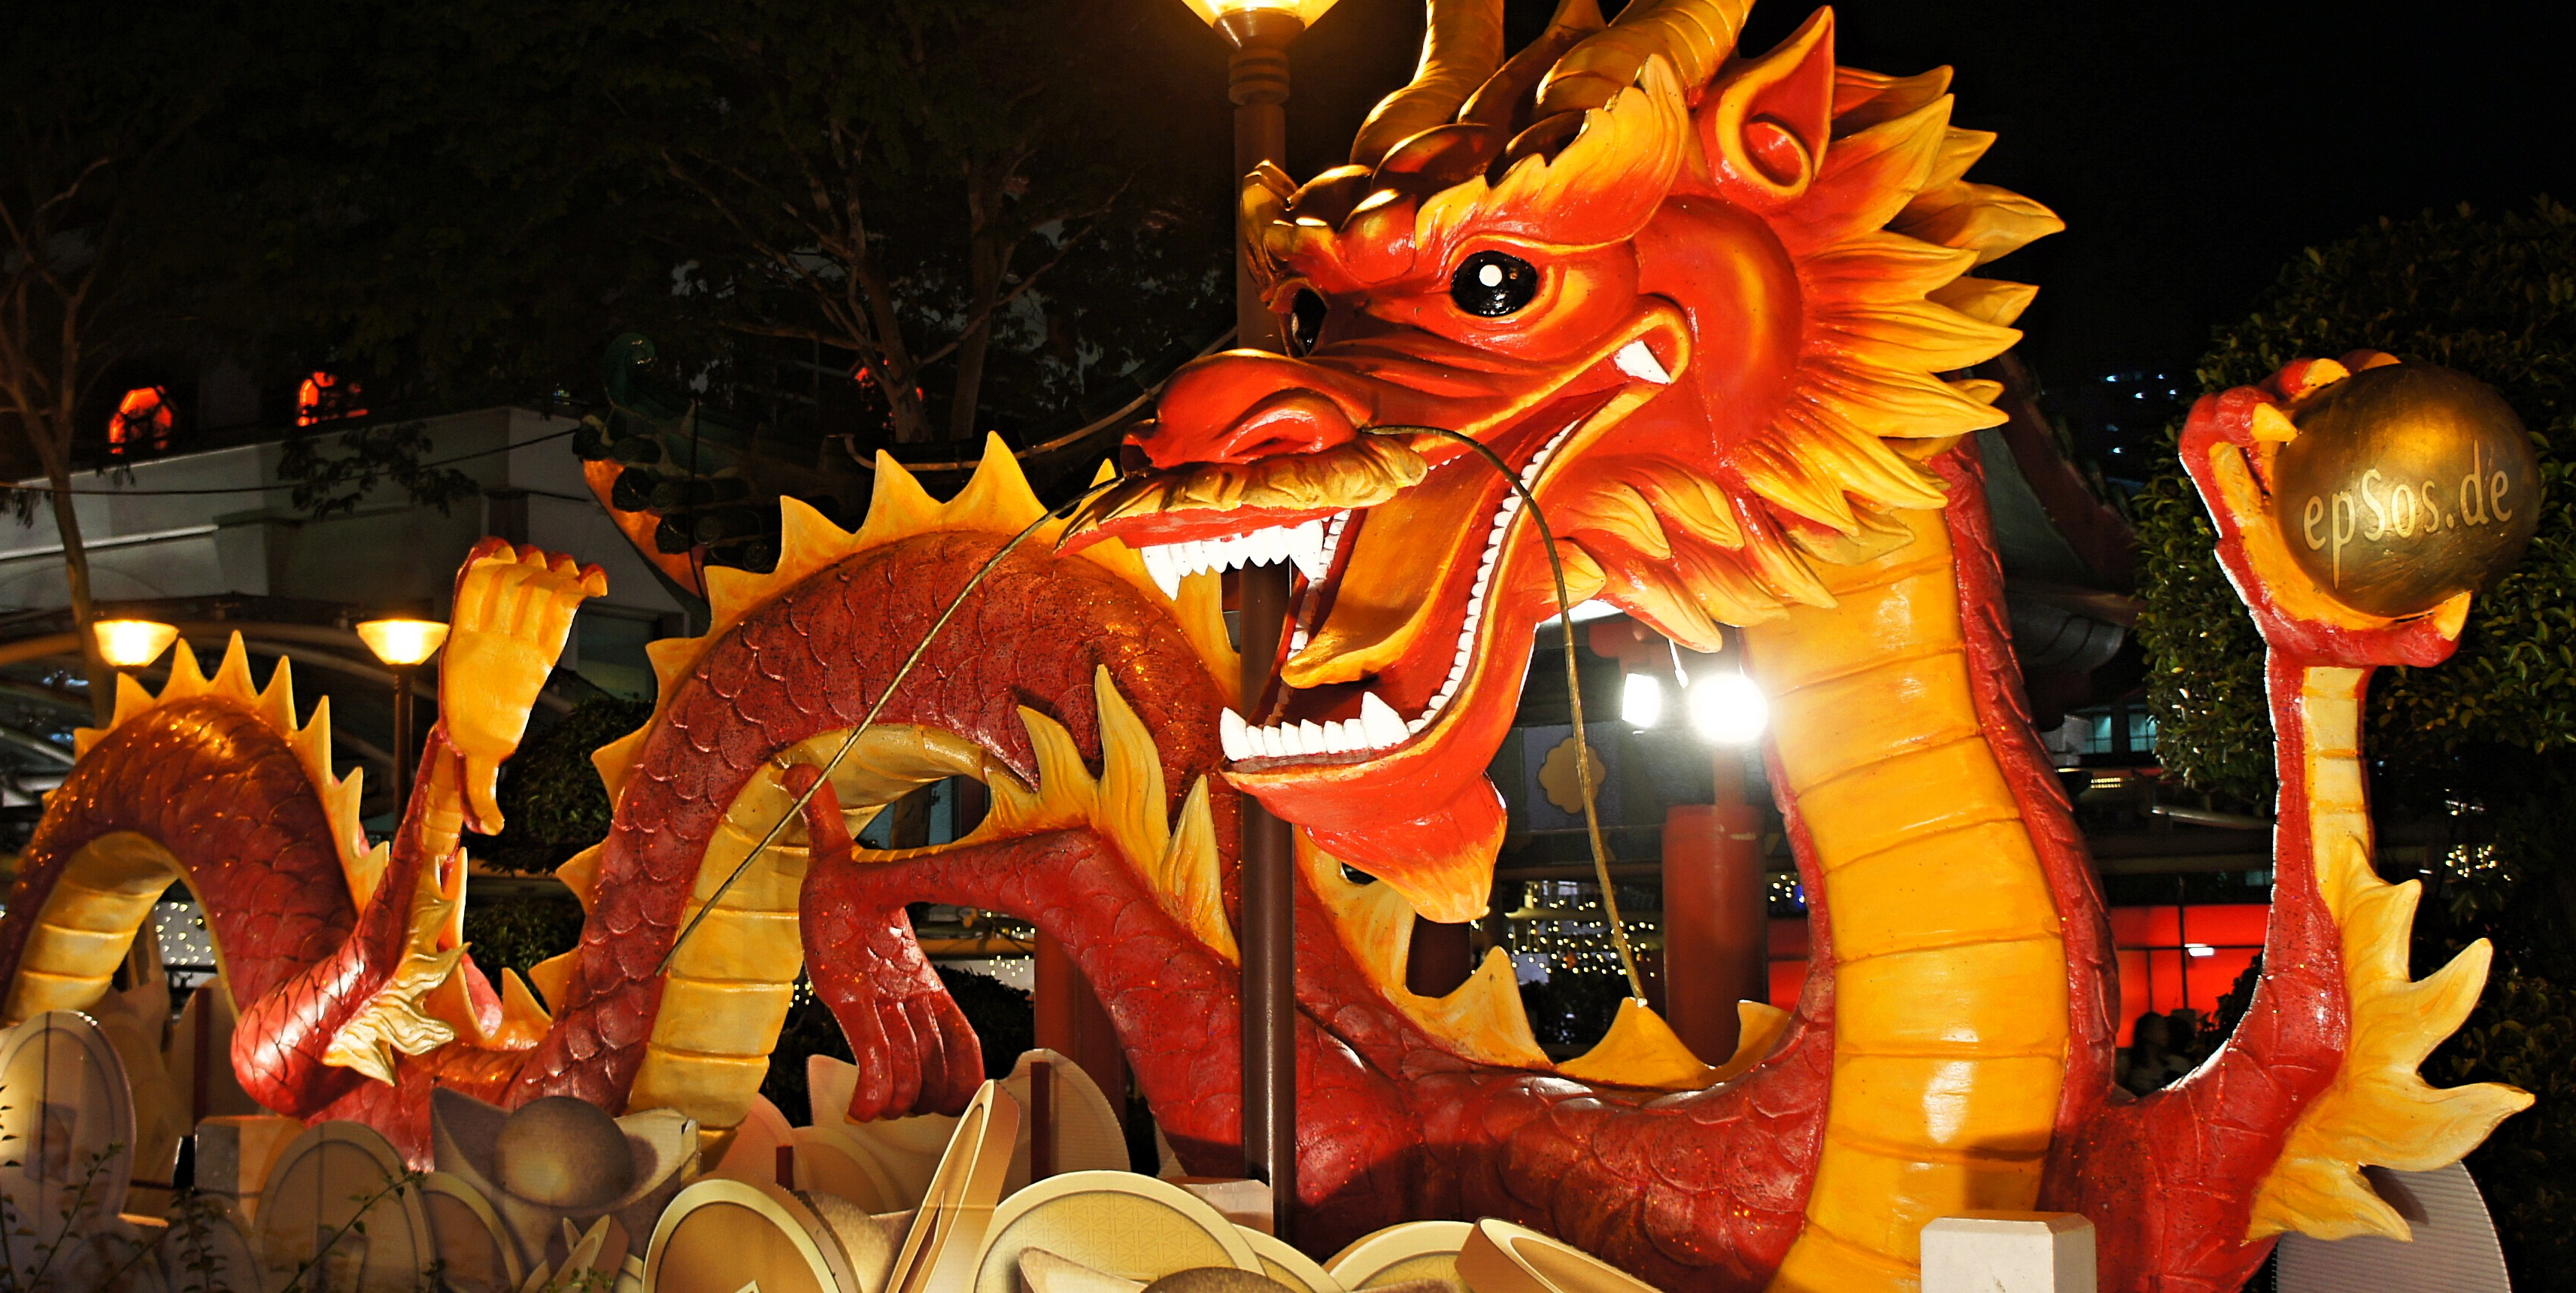 chinese new year dragon picture - What Is Chinese New Year